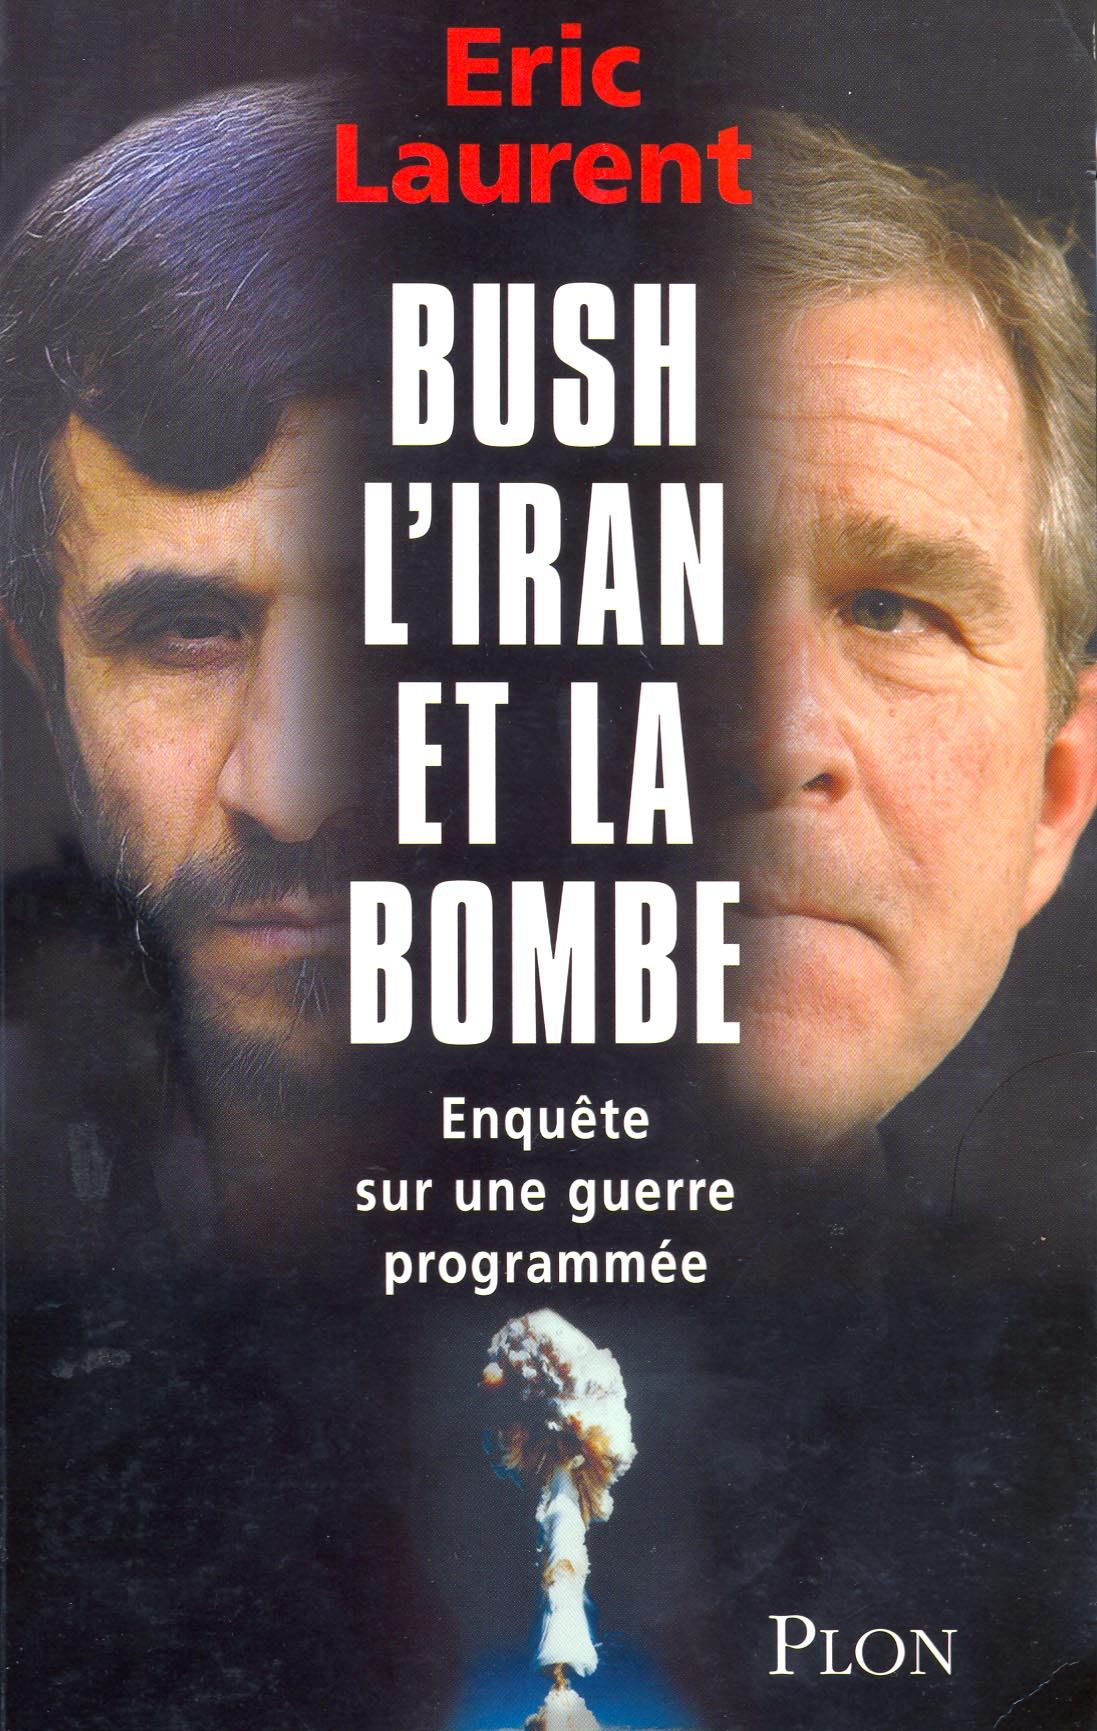 Bush,Iran and Bomb